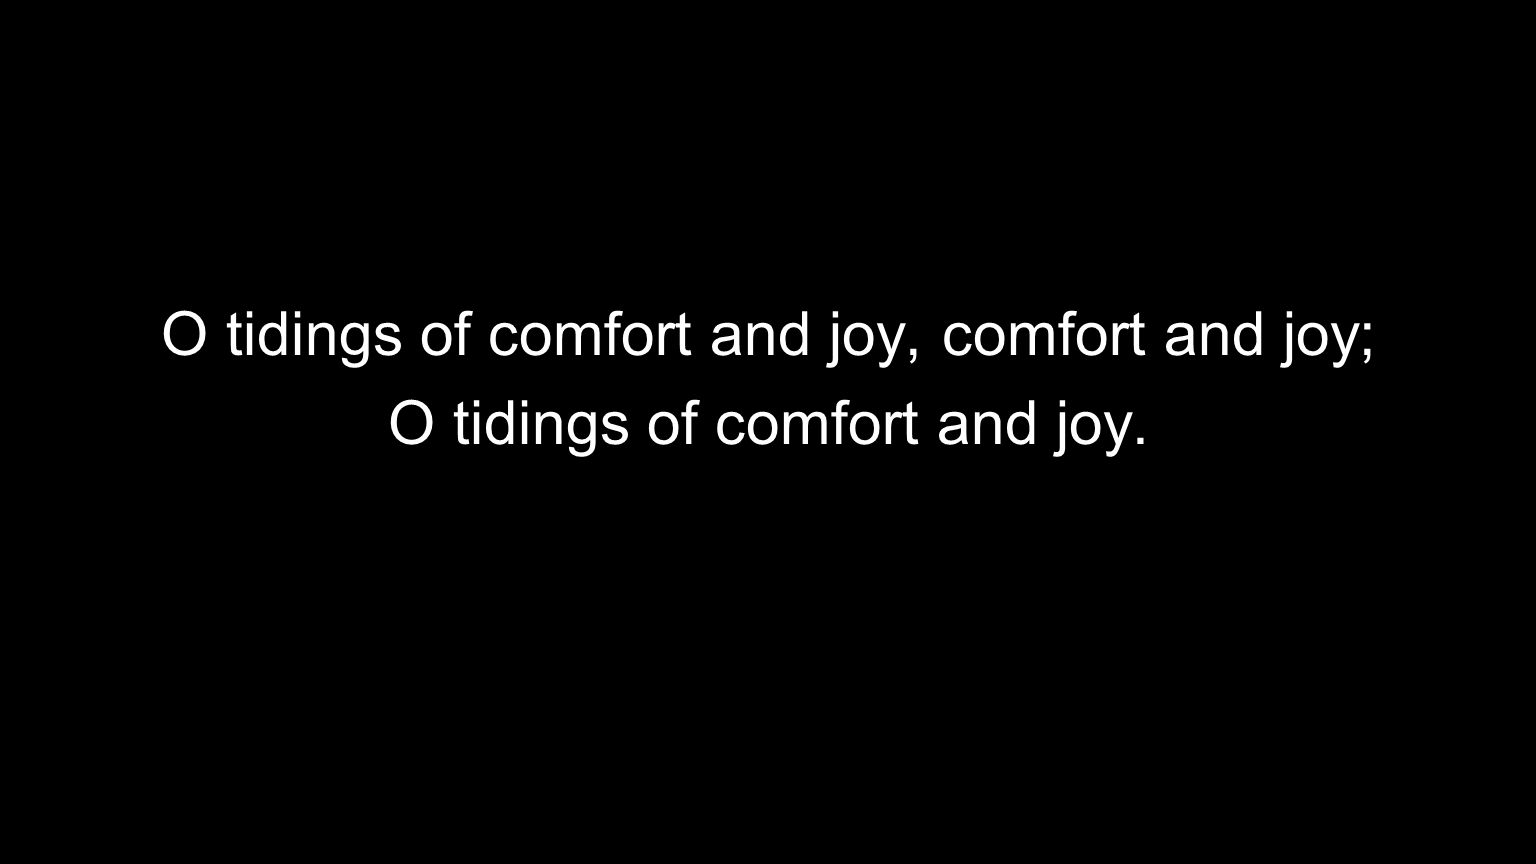 O tidings of comfort and joy, comfort and joy;